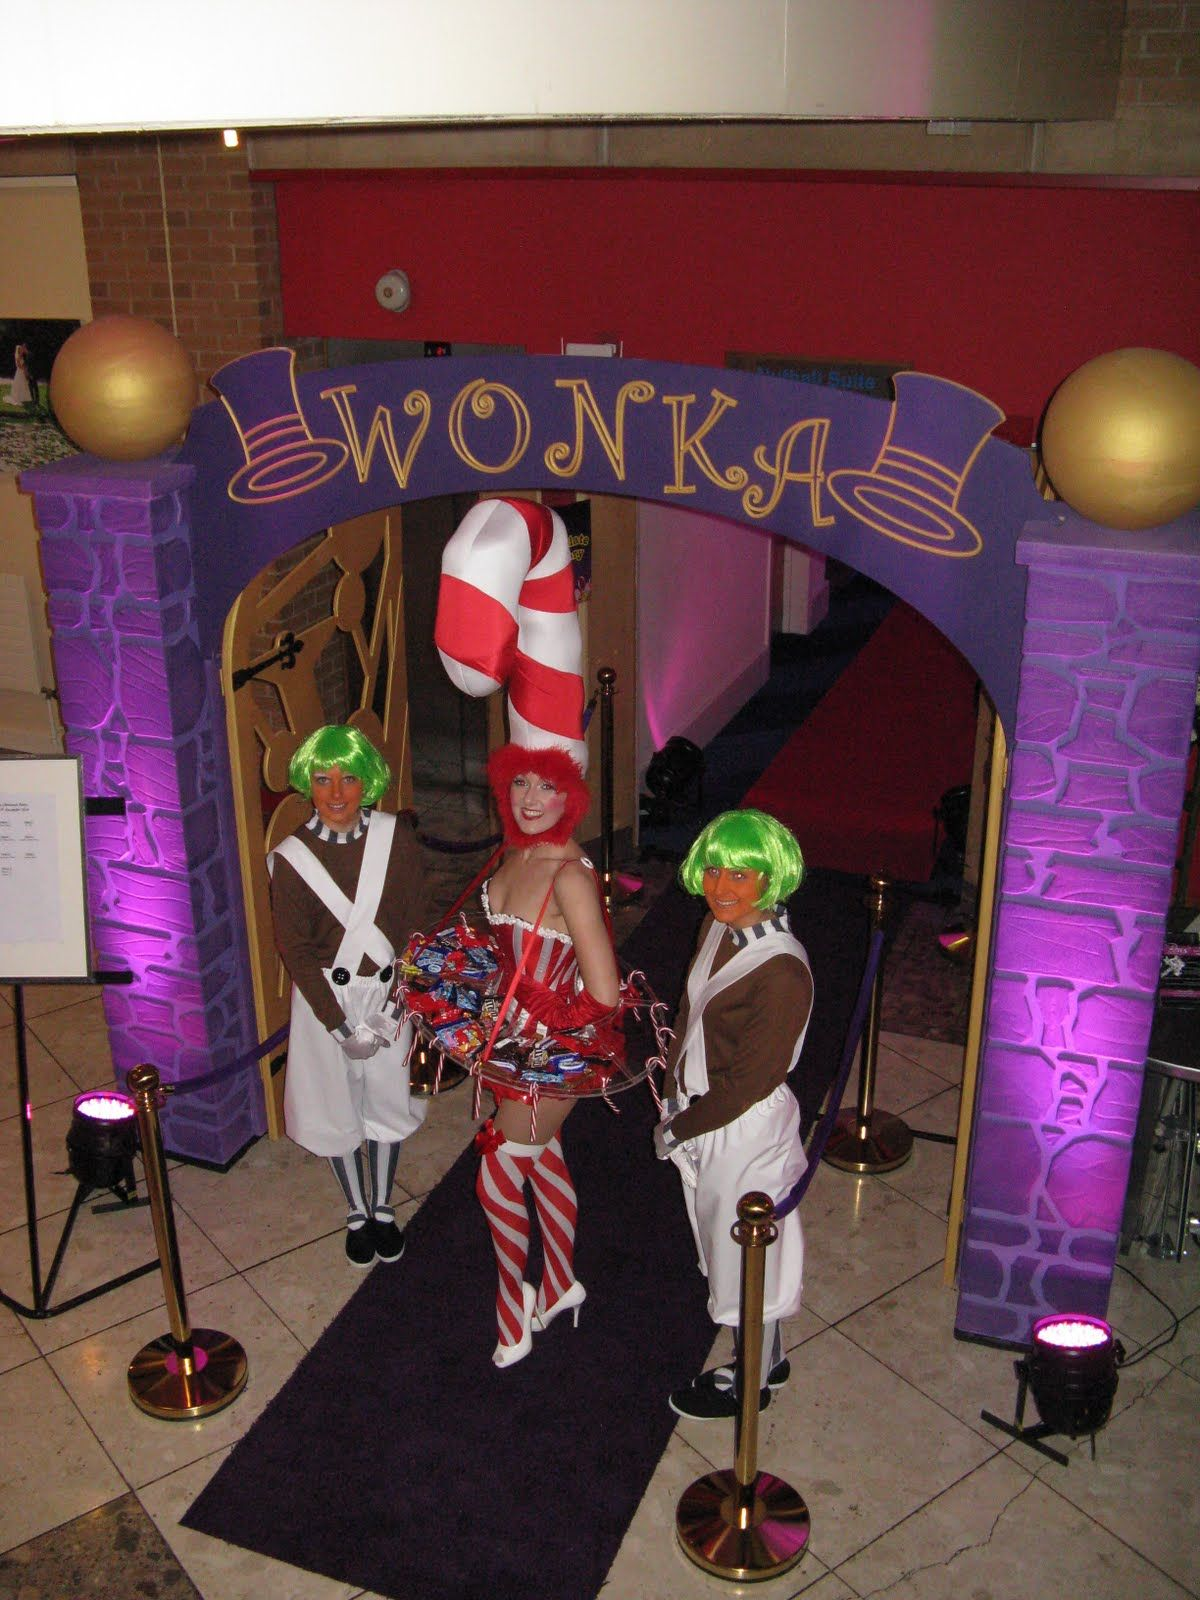 party prop entrance | Latest event news: Weddings and Willy Wonka ...